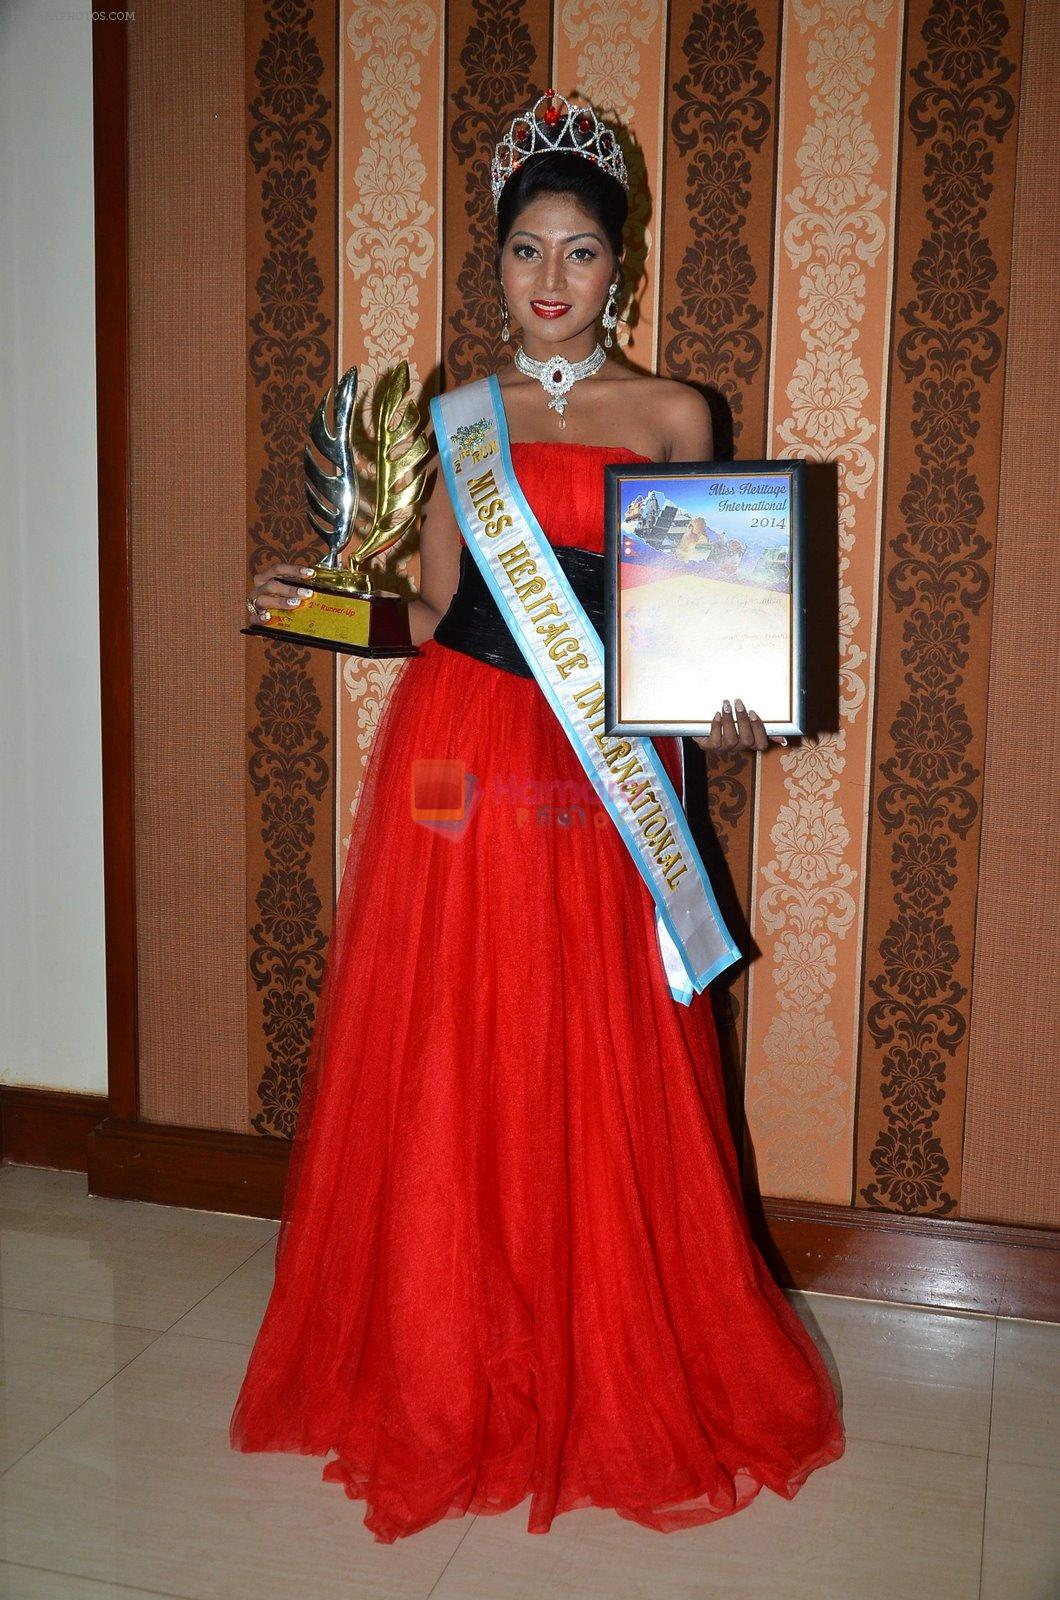 Shital Upare, second runner-up Miss Heritage International in Kohinoor on 9th Dec 2014